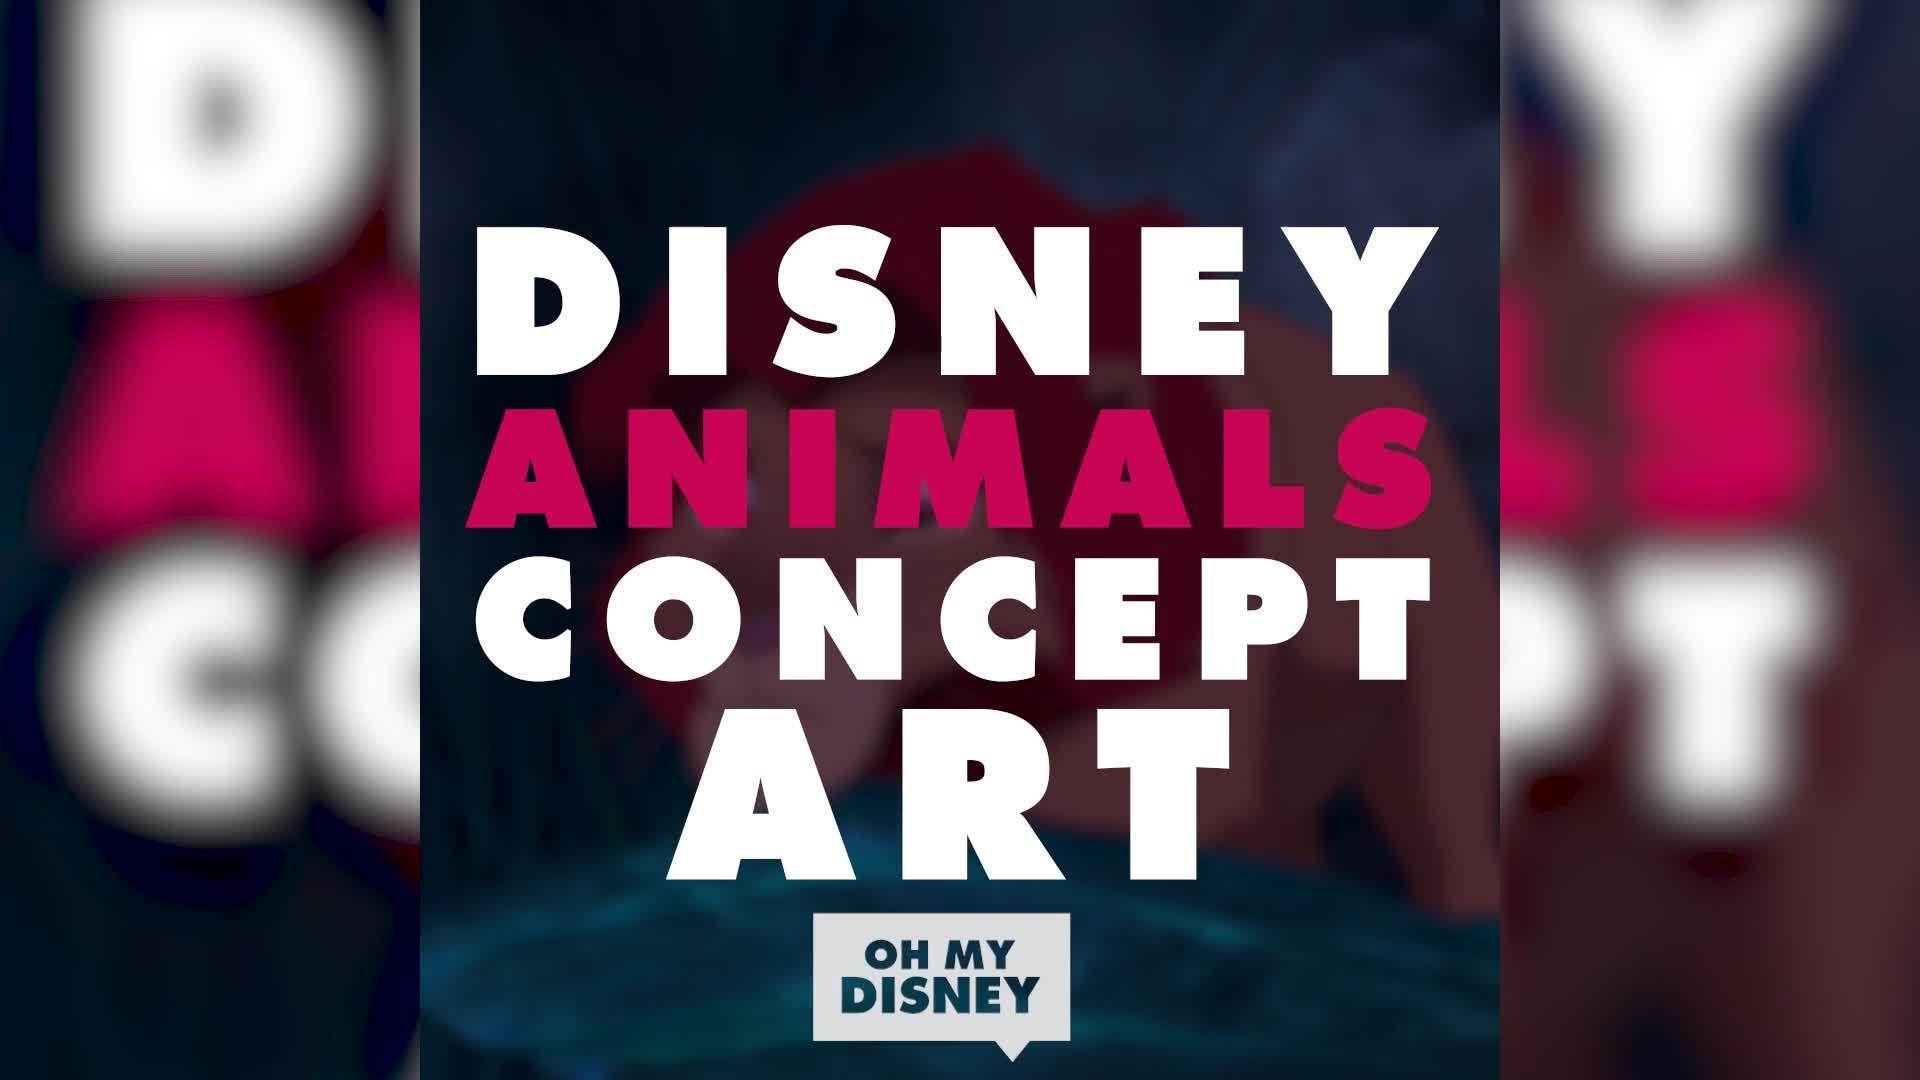 Disney Animals Concept Art | Exclusives by Oh My Disney